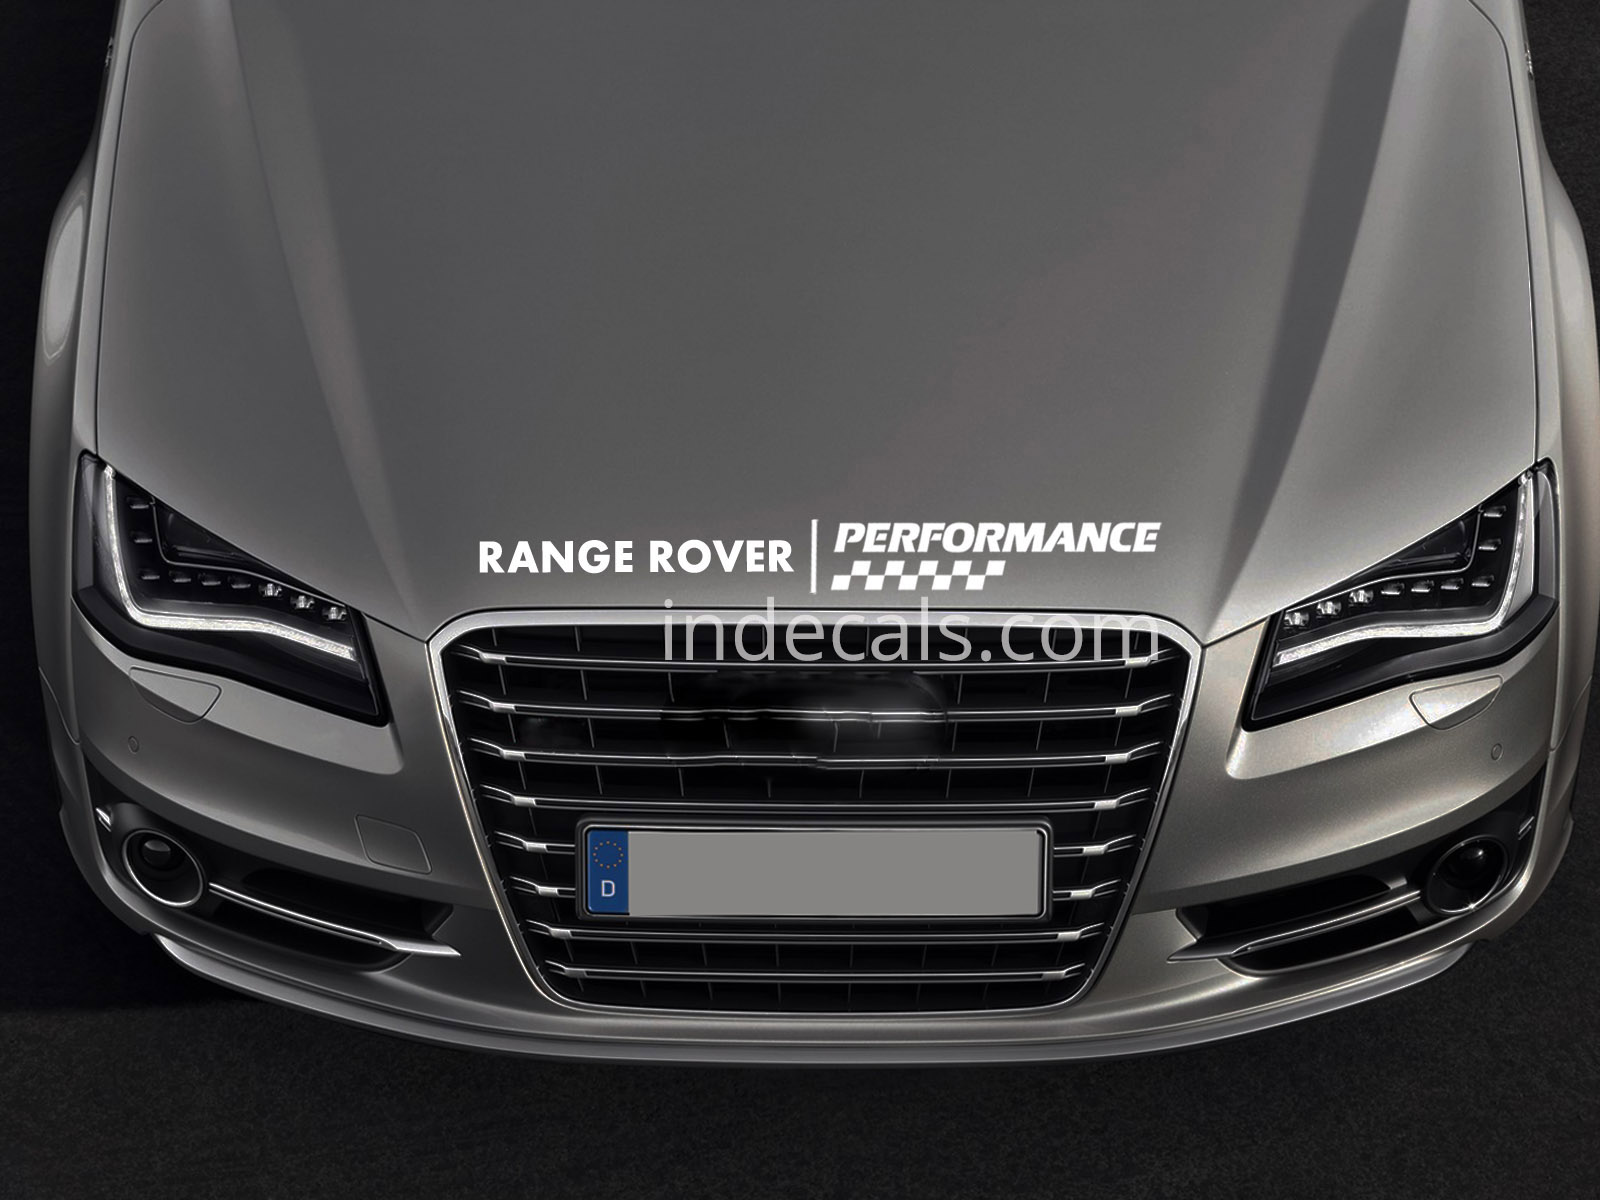 1 x Range Rover Peformance Sticker for Bonnet - White